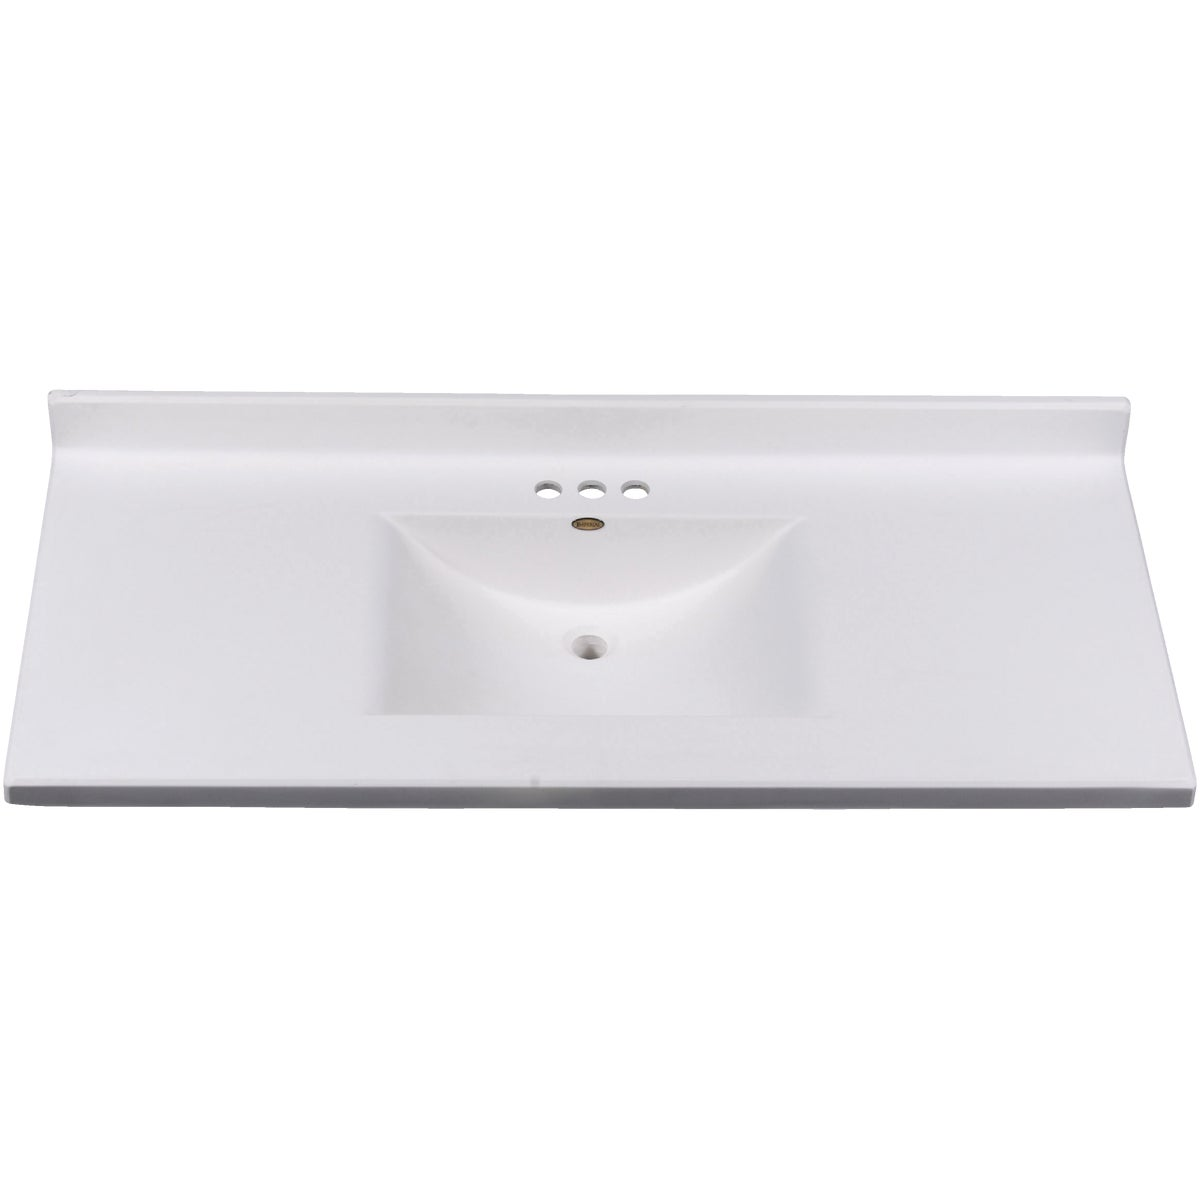 SOLID WHITE WAVE BOWL - VW4922SPWSS by Imperial Marble Corp